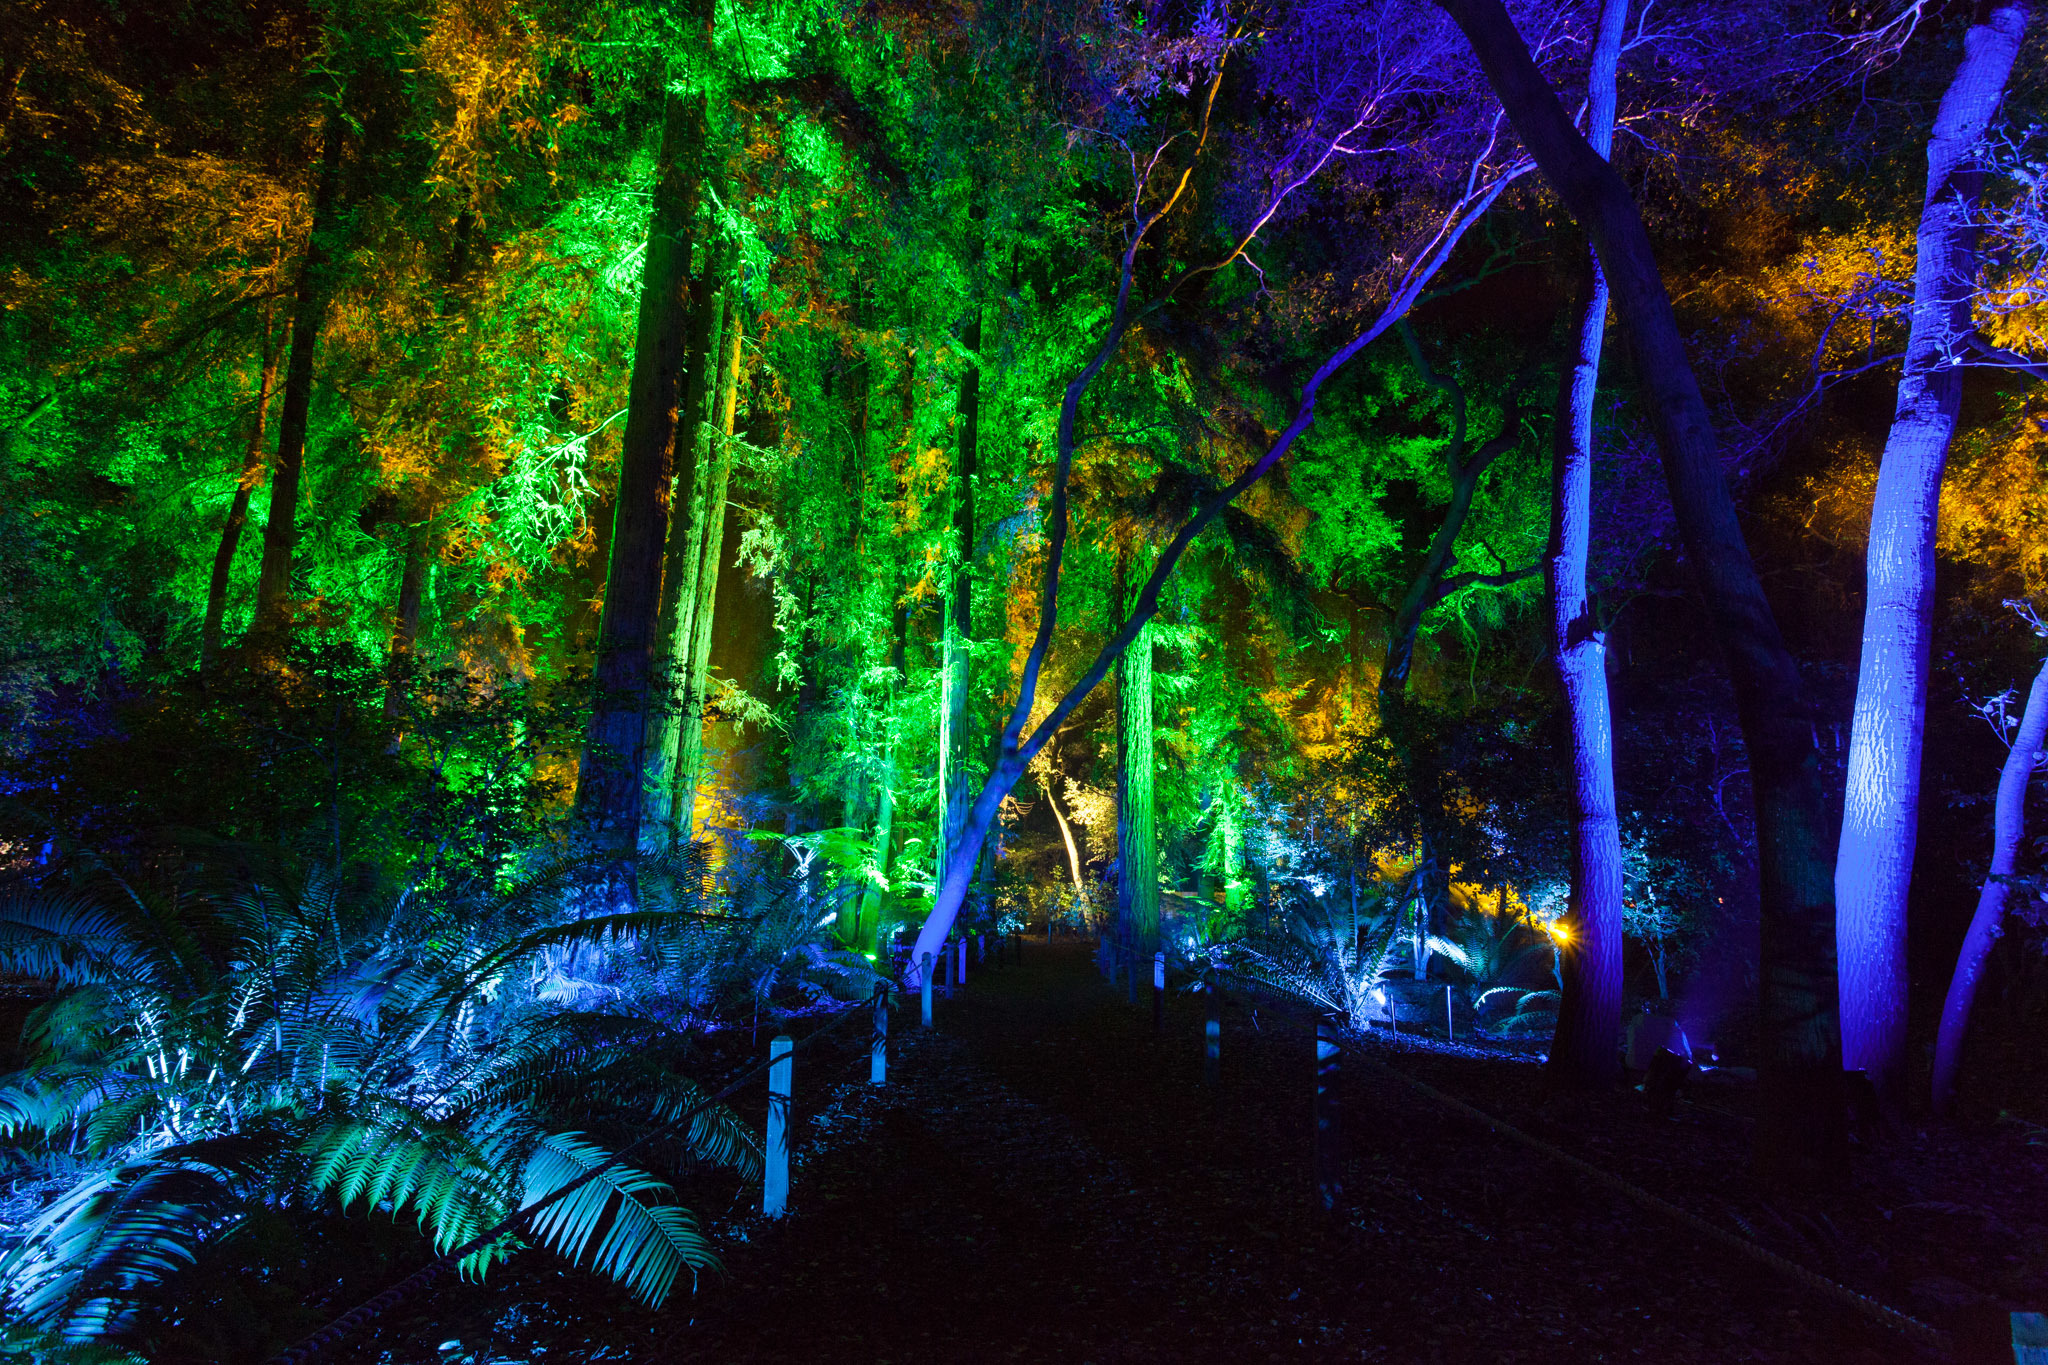 timeout - Enchanted Forest Of Light Descanso Gardens December 21